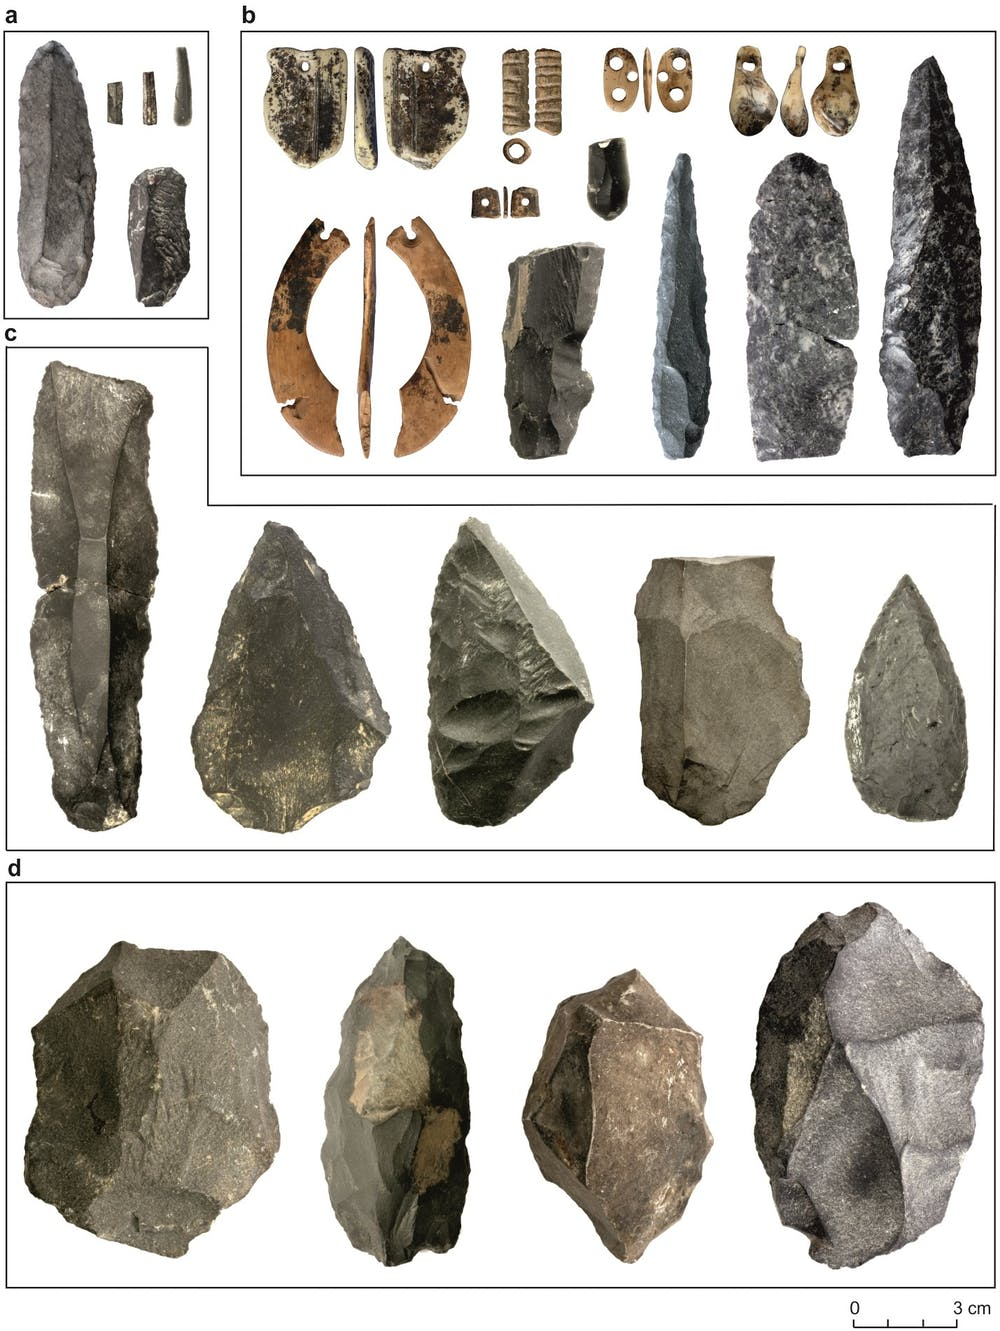 Selection of artefacts from Denisova Cave